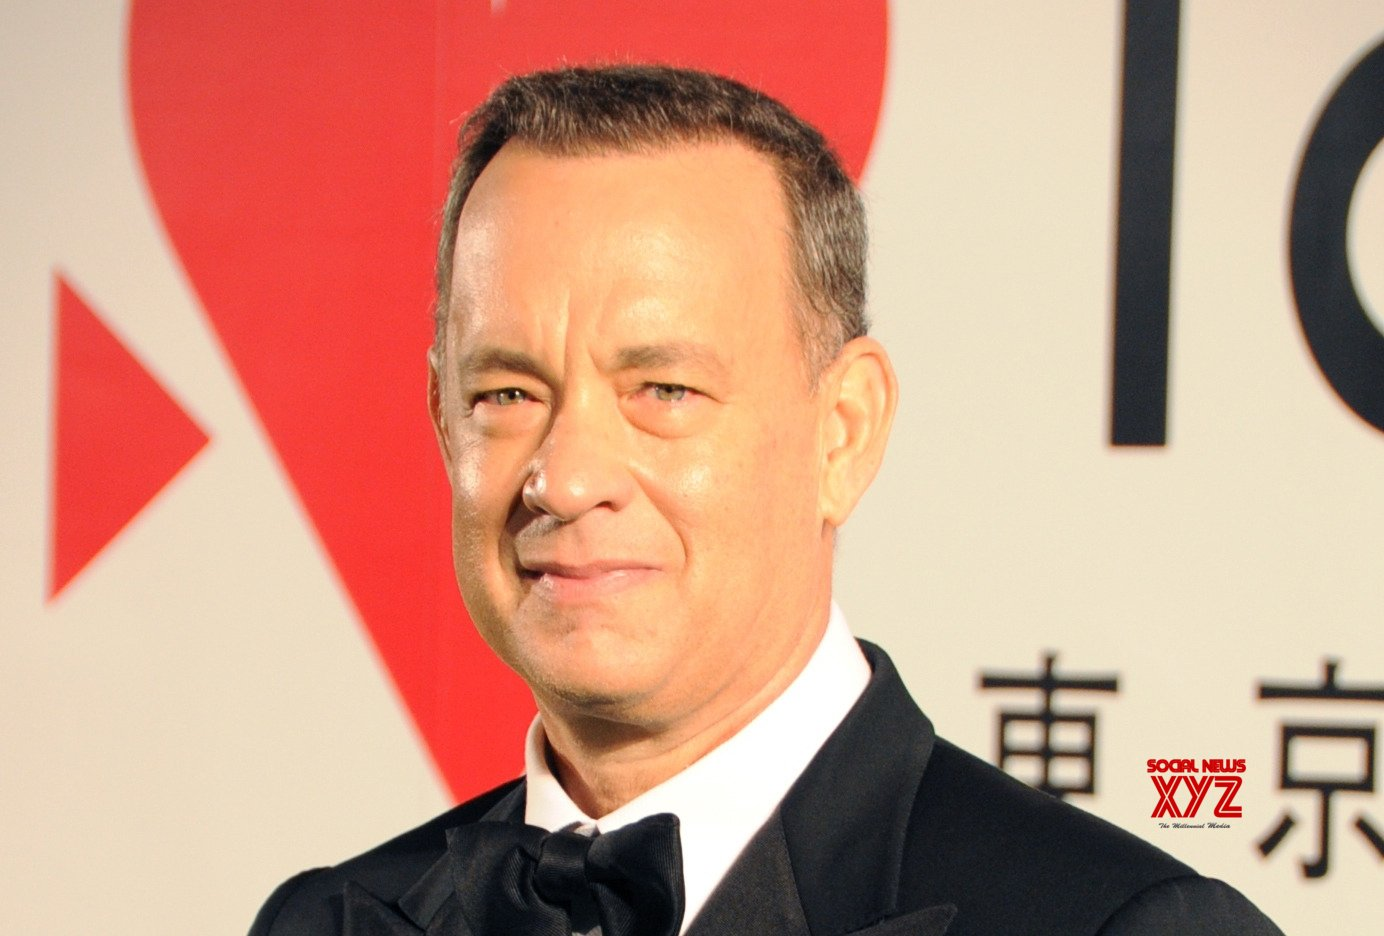 'SNL' returns for work-at-home version with host Tom Hanks